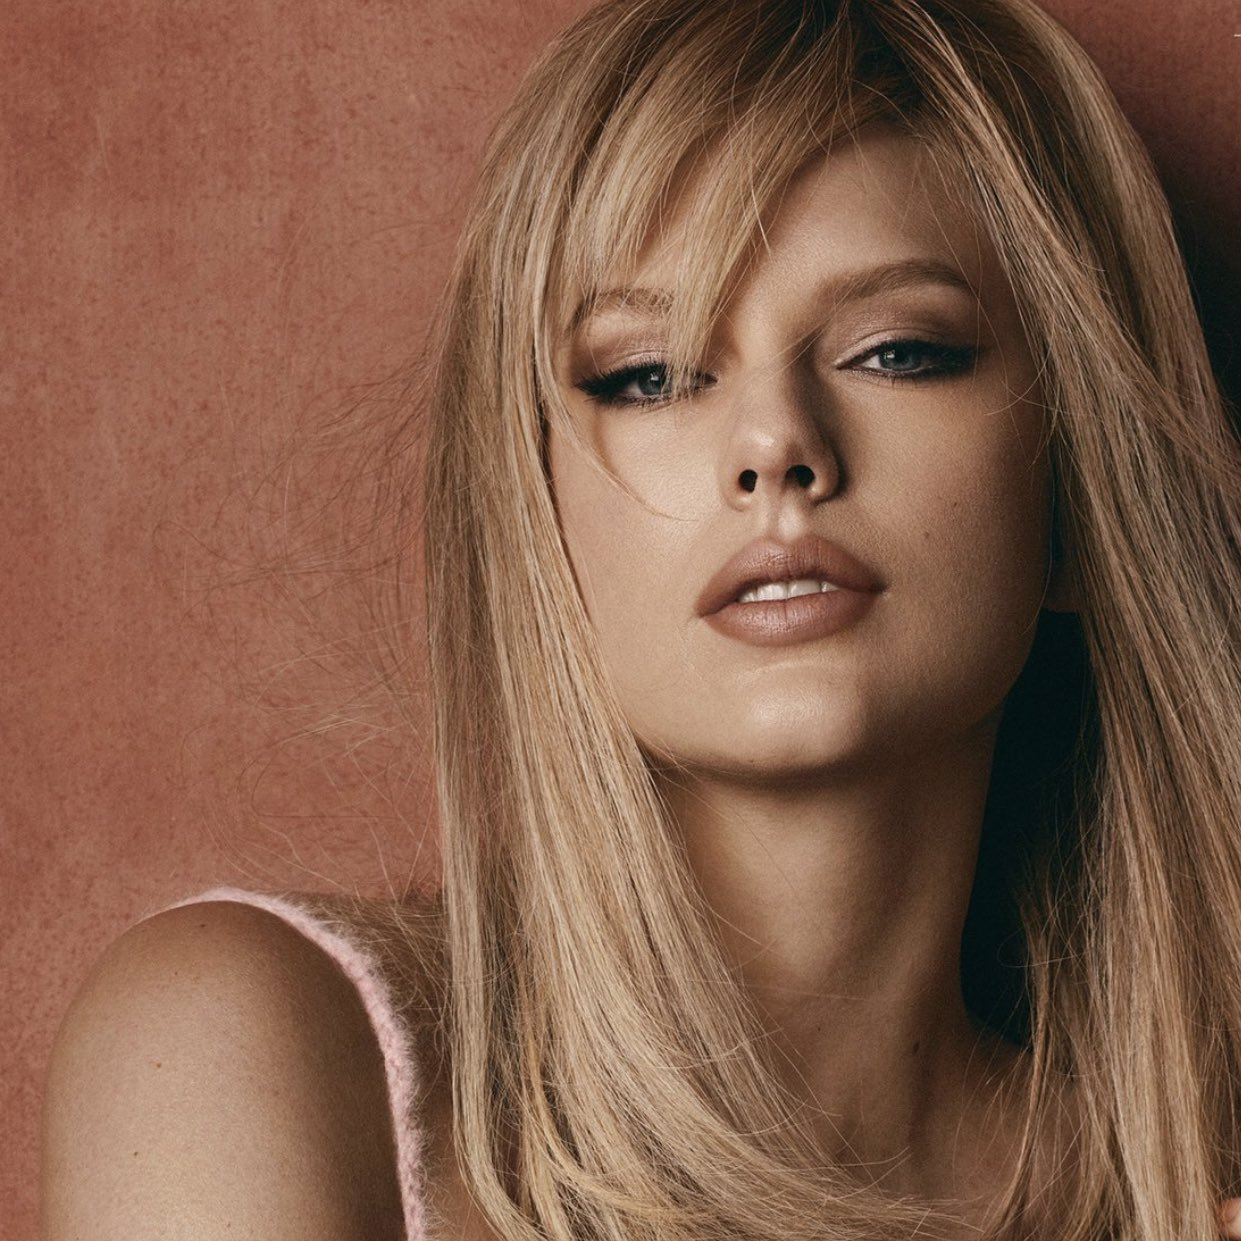 Singer Taylor Swift poses in pink J.W. Anderson dress